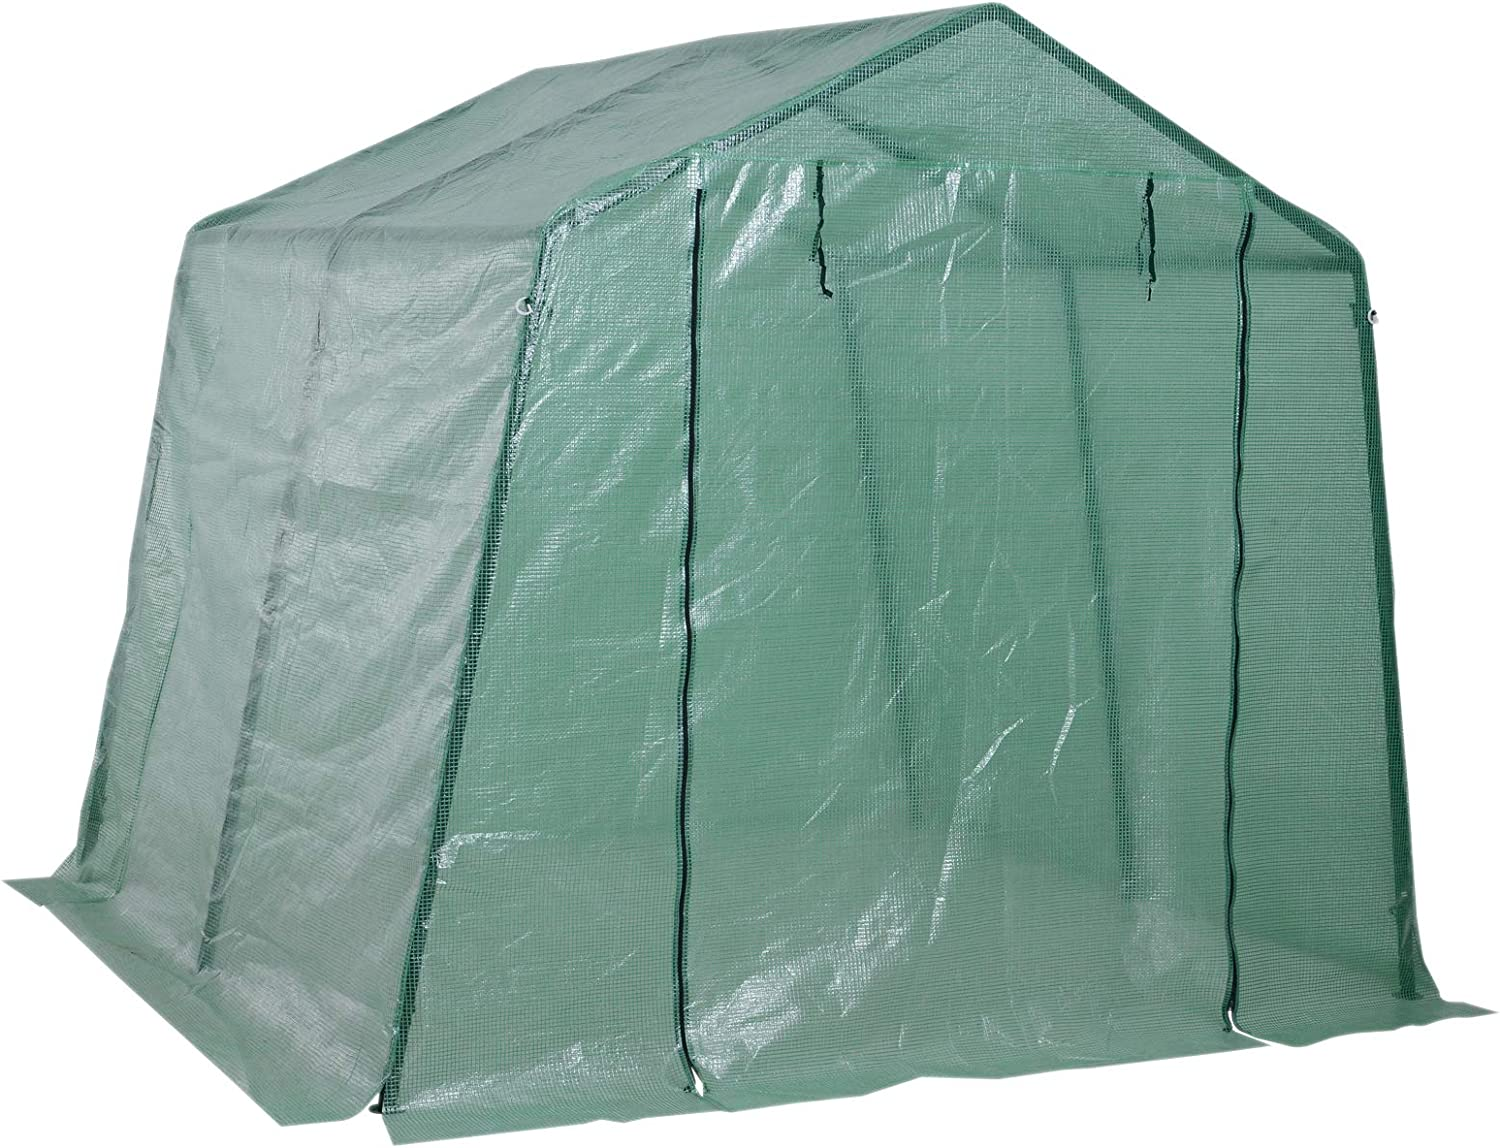 Outsunny Walkin Greenhouse Plant Growth Tent Warm House Gardening Tunnel PE Cover Outdoor Planter 250 x 240 x 210 cm